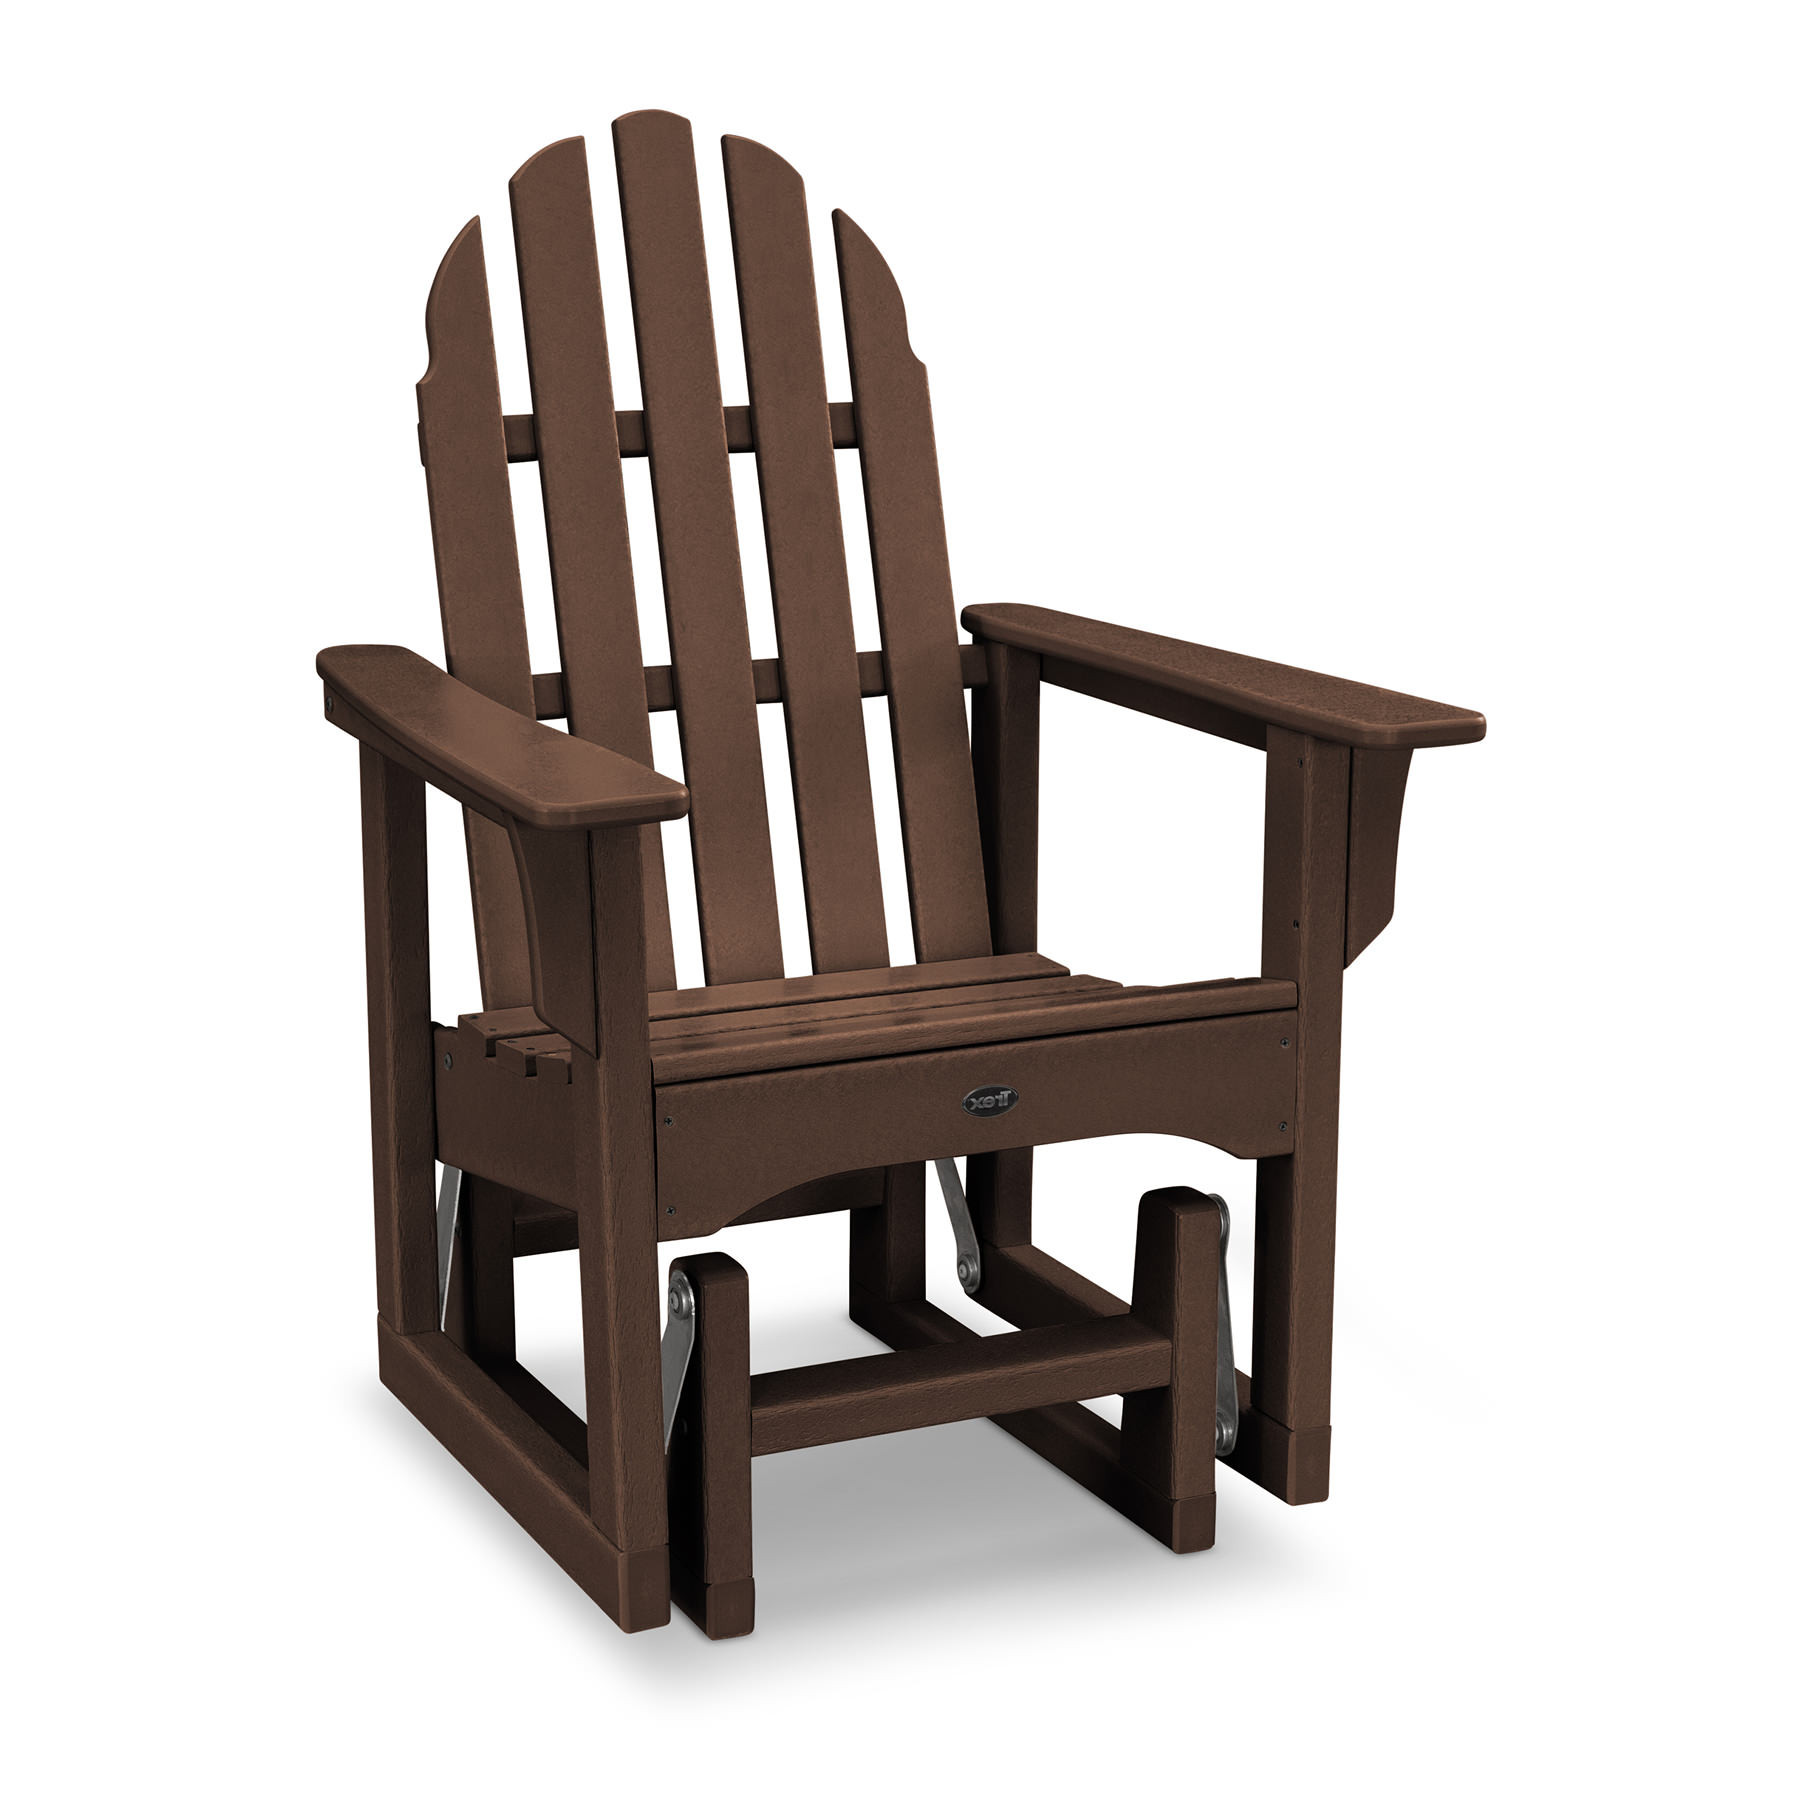 Trex Outdoor Furniture Cape Cod 3-Piece Adirondack Chair Set with Side Table